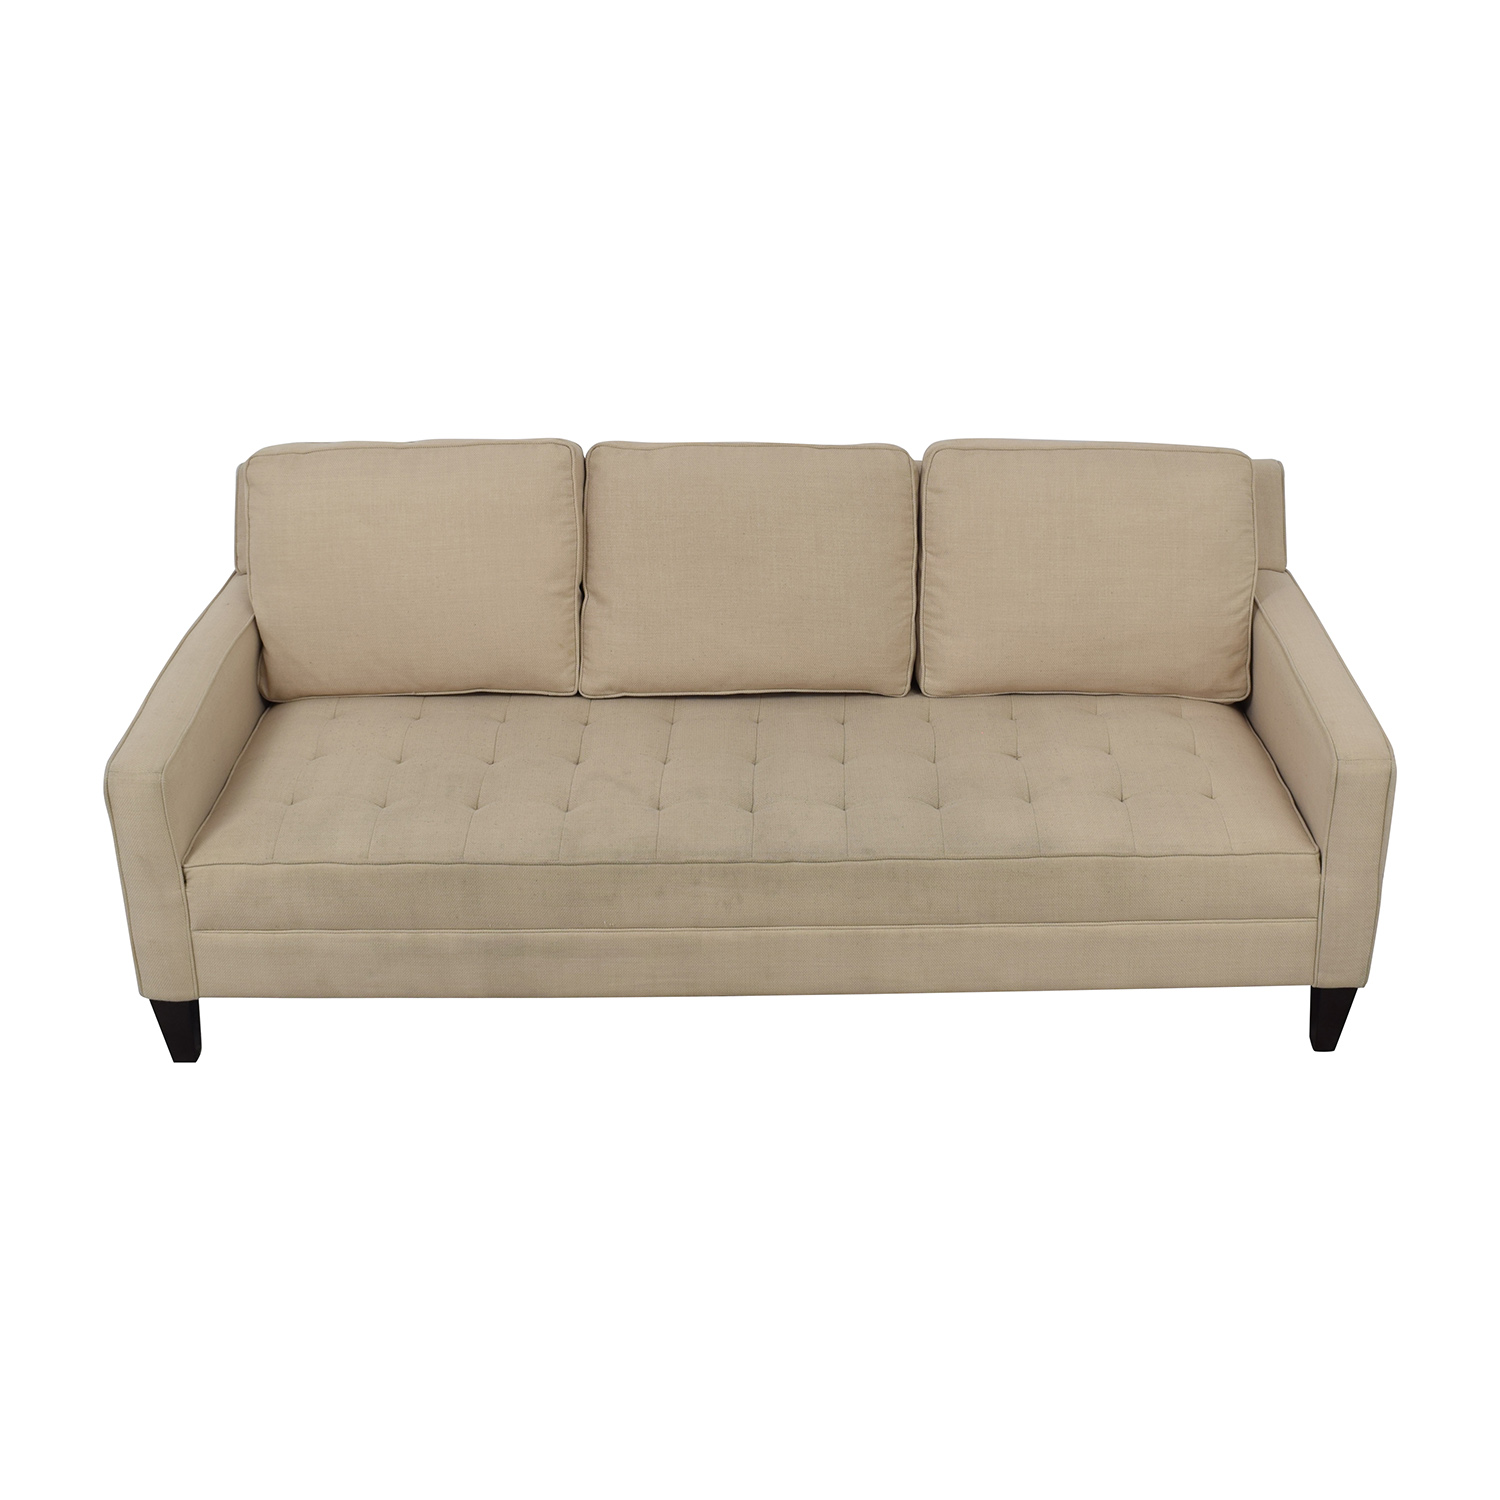 single cushion sofa pros and cons chandler 69 off crate barrel simone daybed